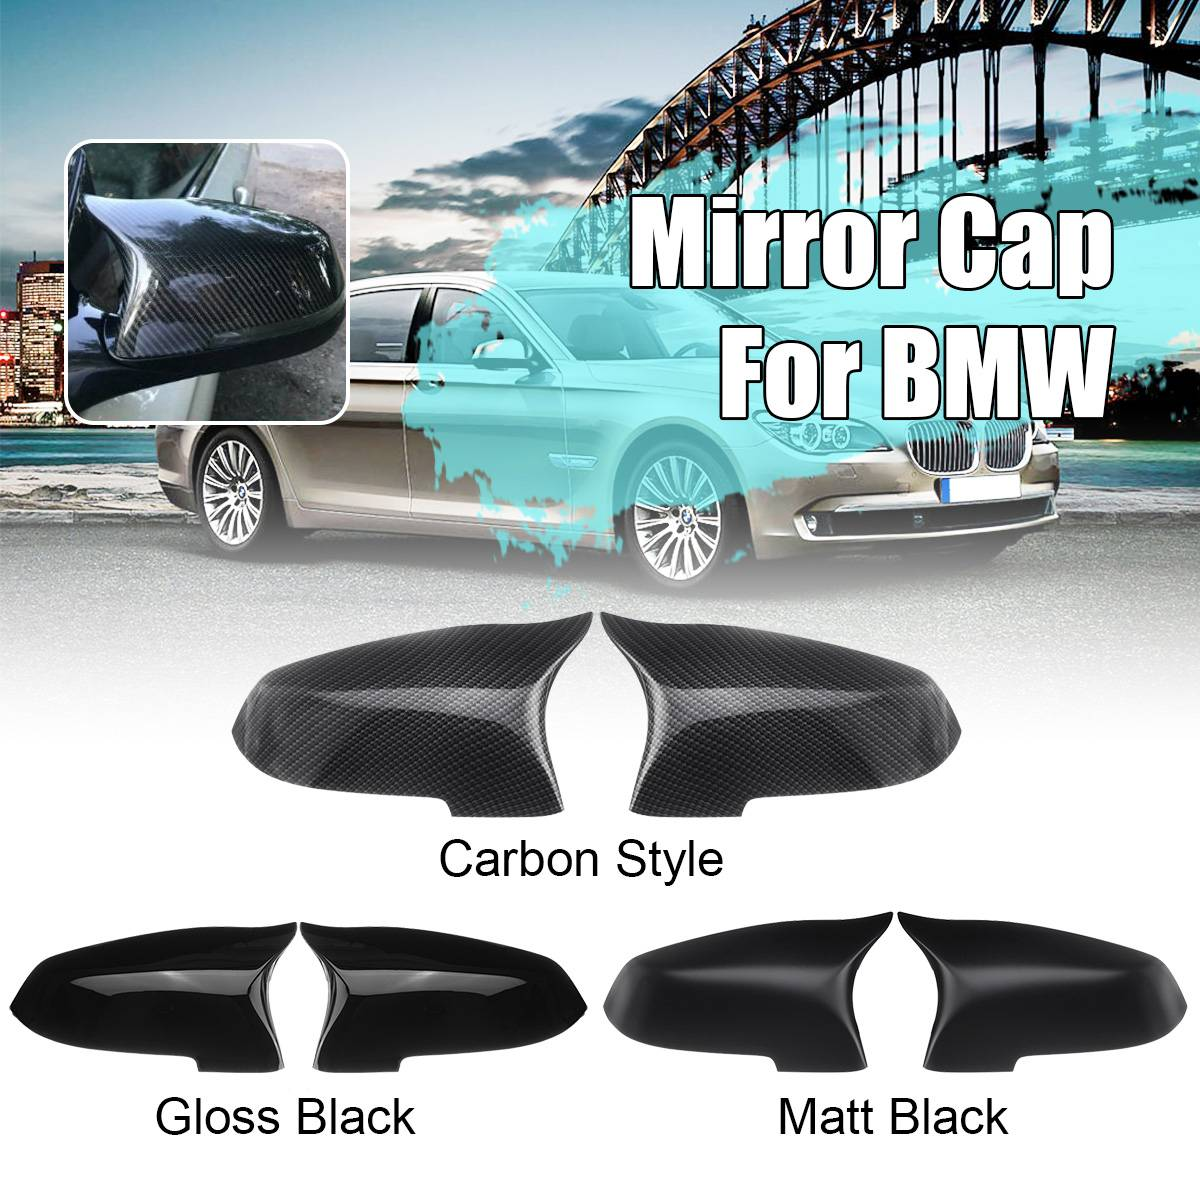 Pair LH RH Side Rearview Mirror Cover Cap For BMW 5 6 7 Series F10 F18 F11 F06 F07 F12 F13 F01 2014 2015 2016 Mirror CoversPair LH RH Side Rearview Mirror Cover Cap For BMW 5 6 7 Series F10 F18 F11 F06 F07 F12 F13 F01 2014 2015 2016 Mirror Covers